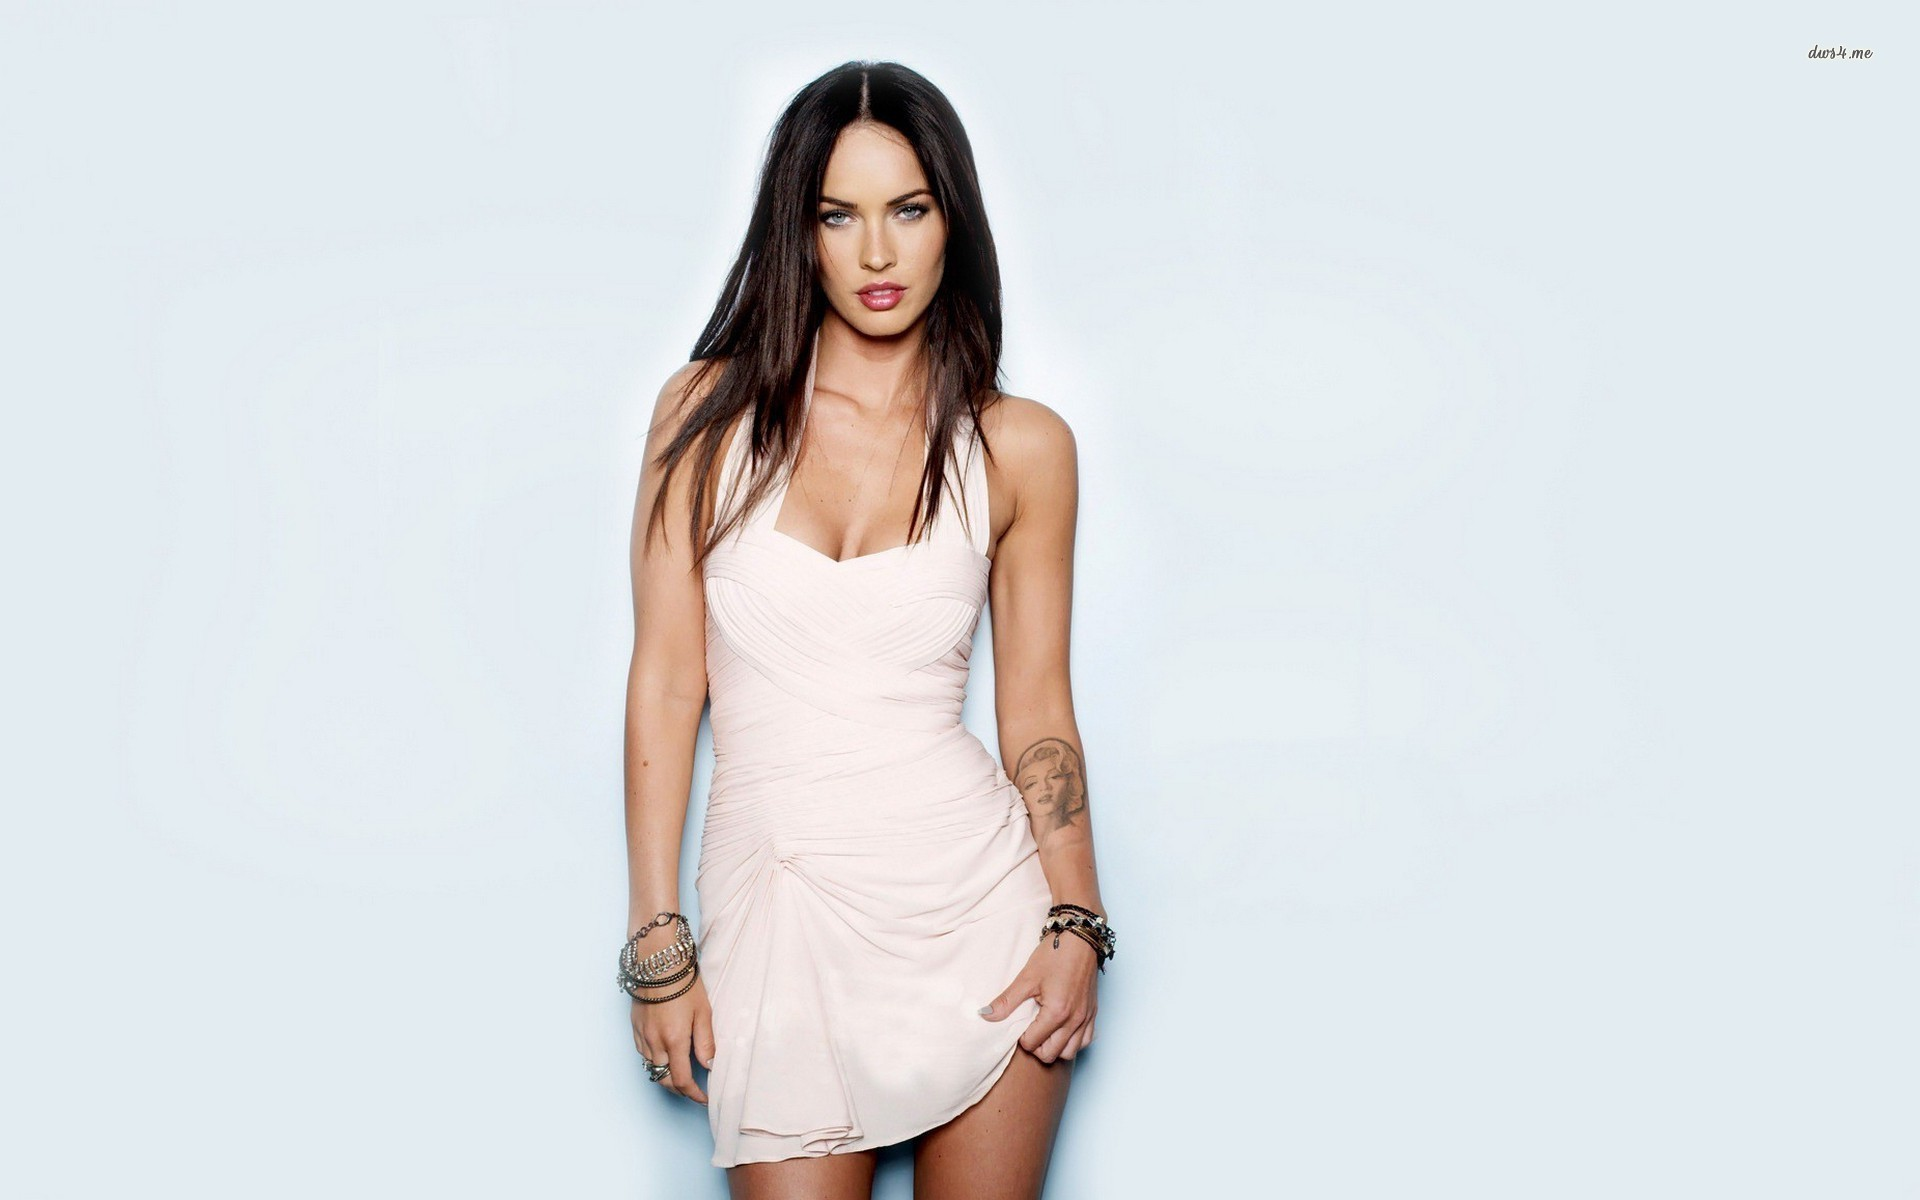 Online Wallpapers Shop Megan Fox Wallpapers: Megan Fox 4K Wallpaper